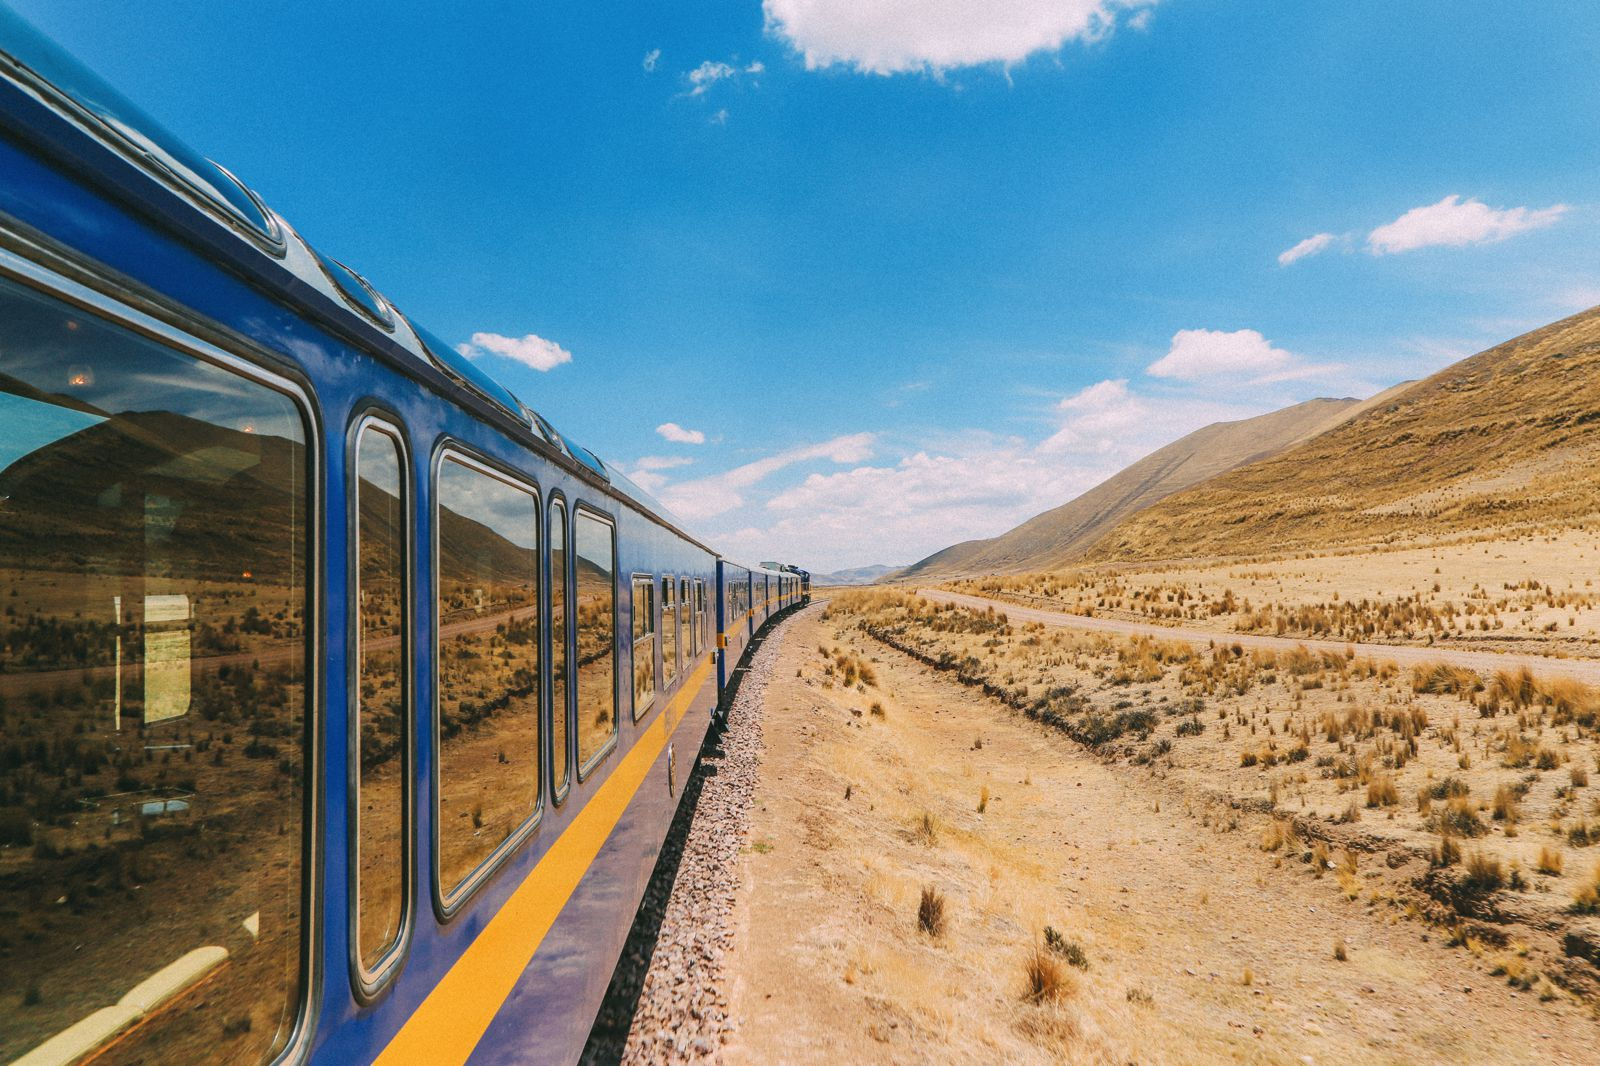 The Andean Explorer - Peru's Beautiful Train Journey From Puno To Cusco (27)